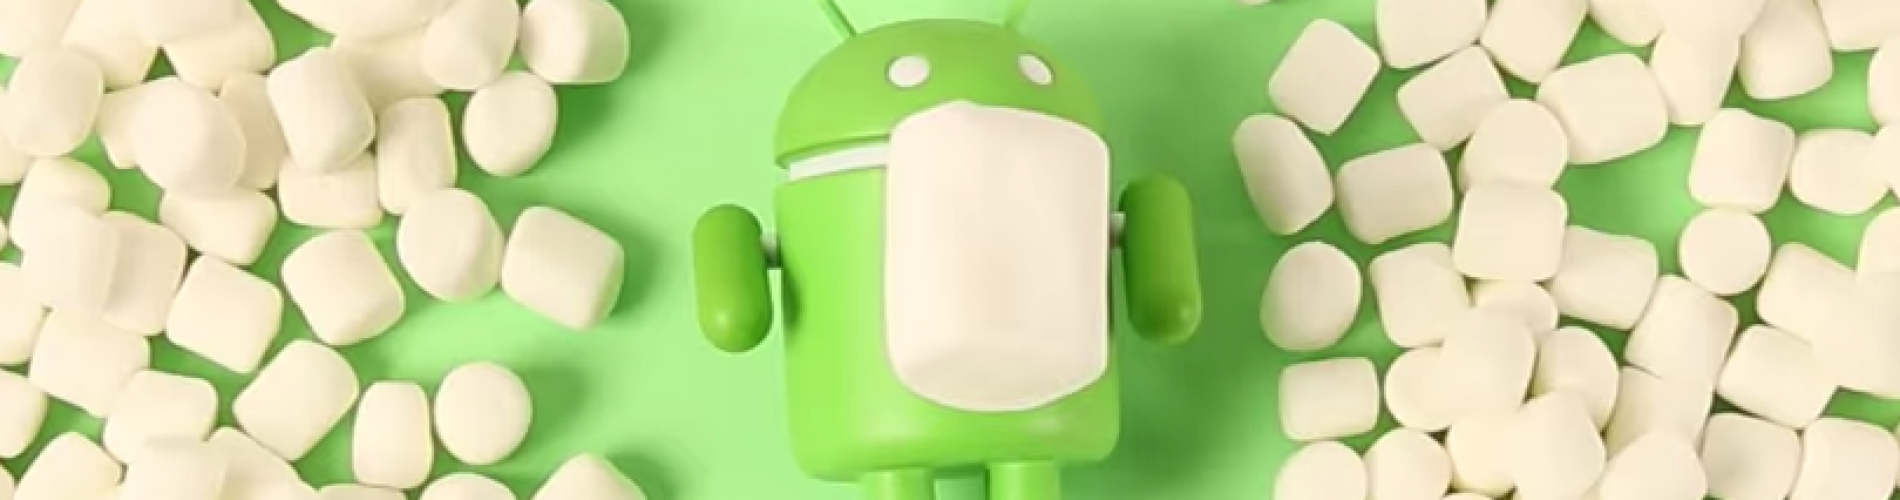 Sony announces 14 devices will receive Android 6.0 Marshmallow